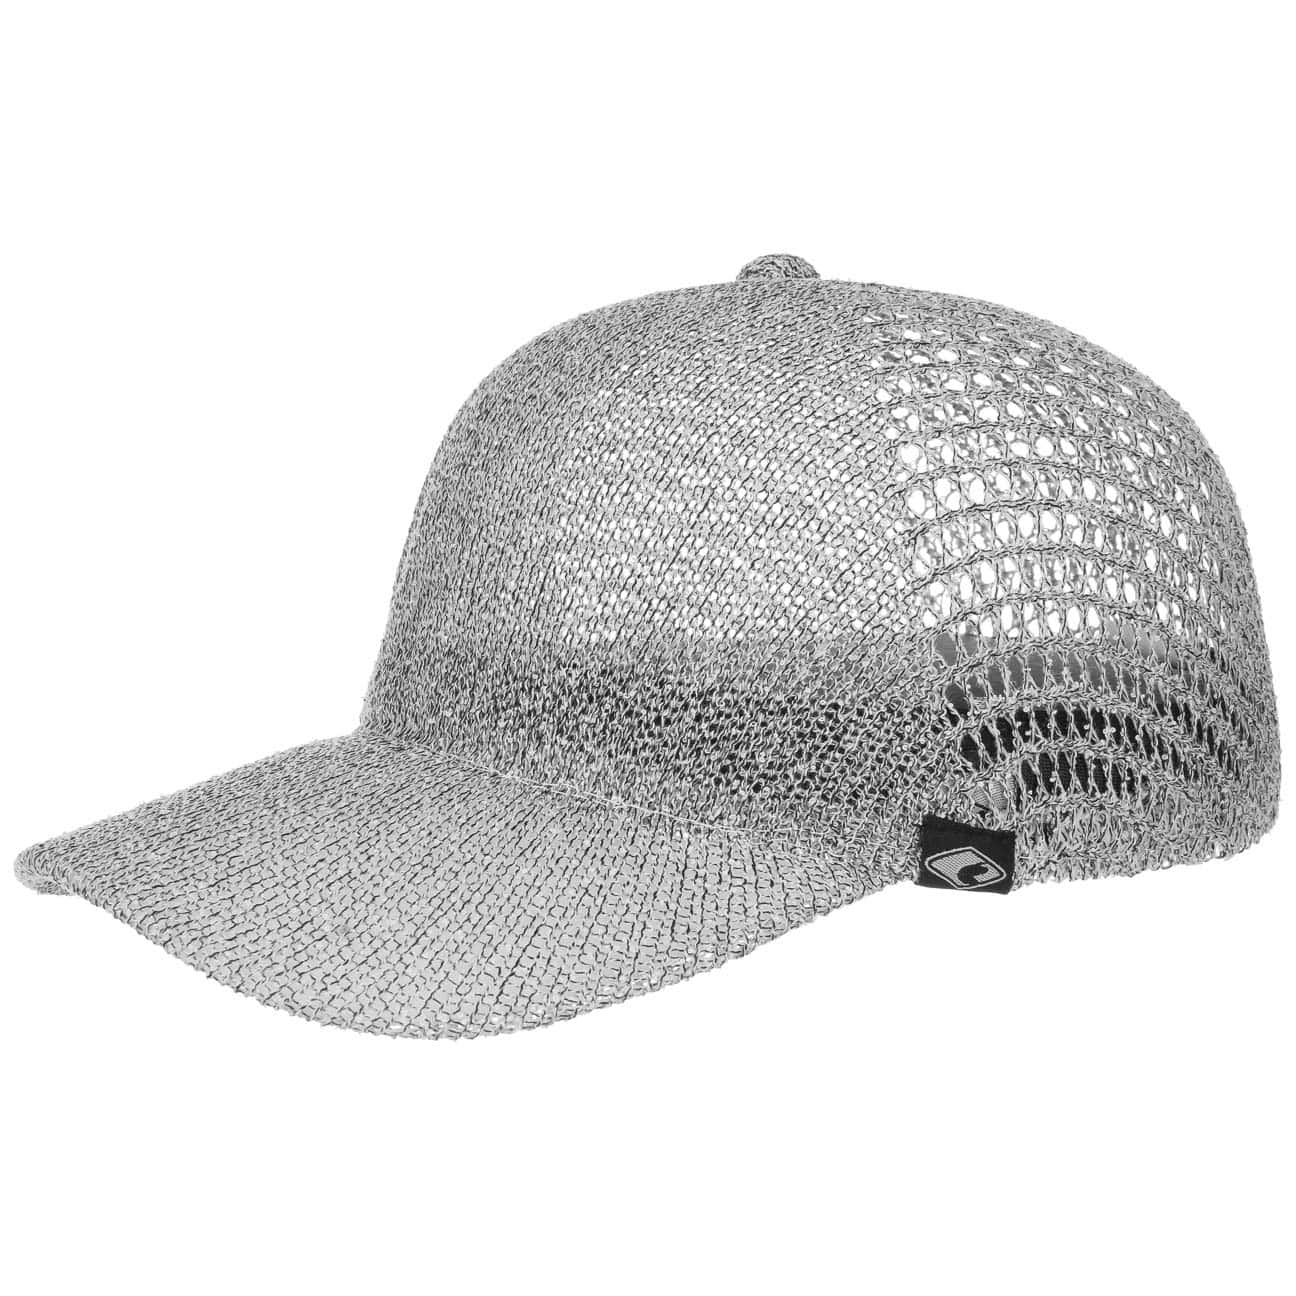 Casquette Odense Ultralight by Chillouts  casquette fitted